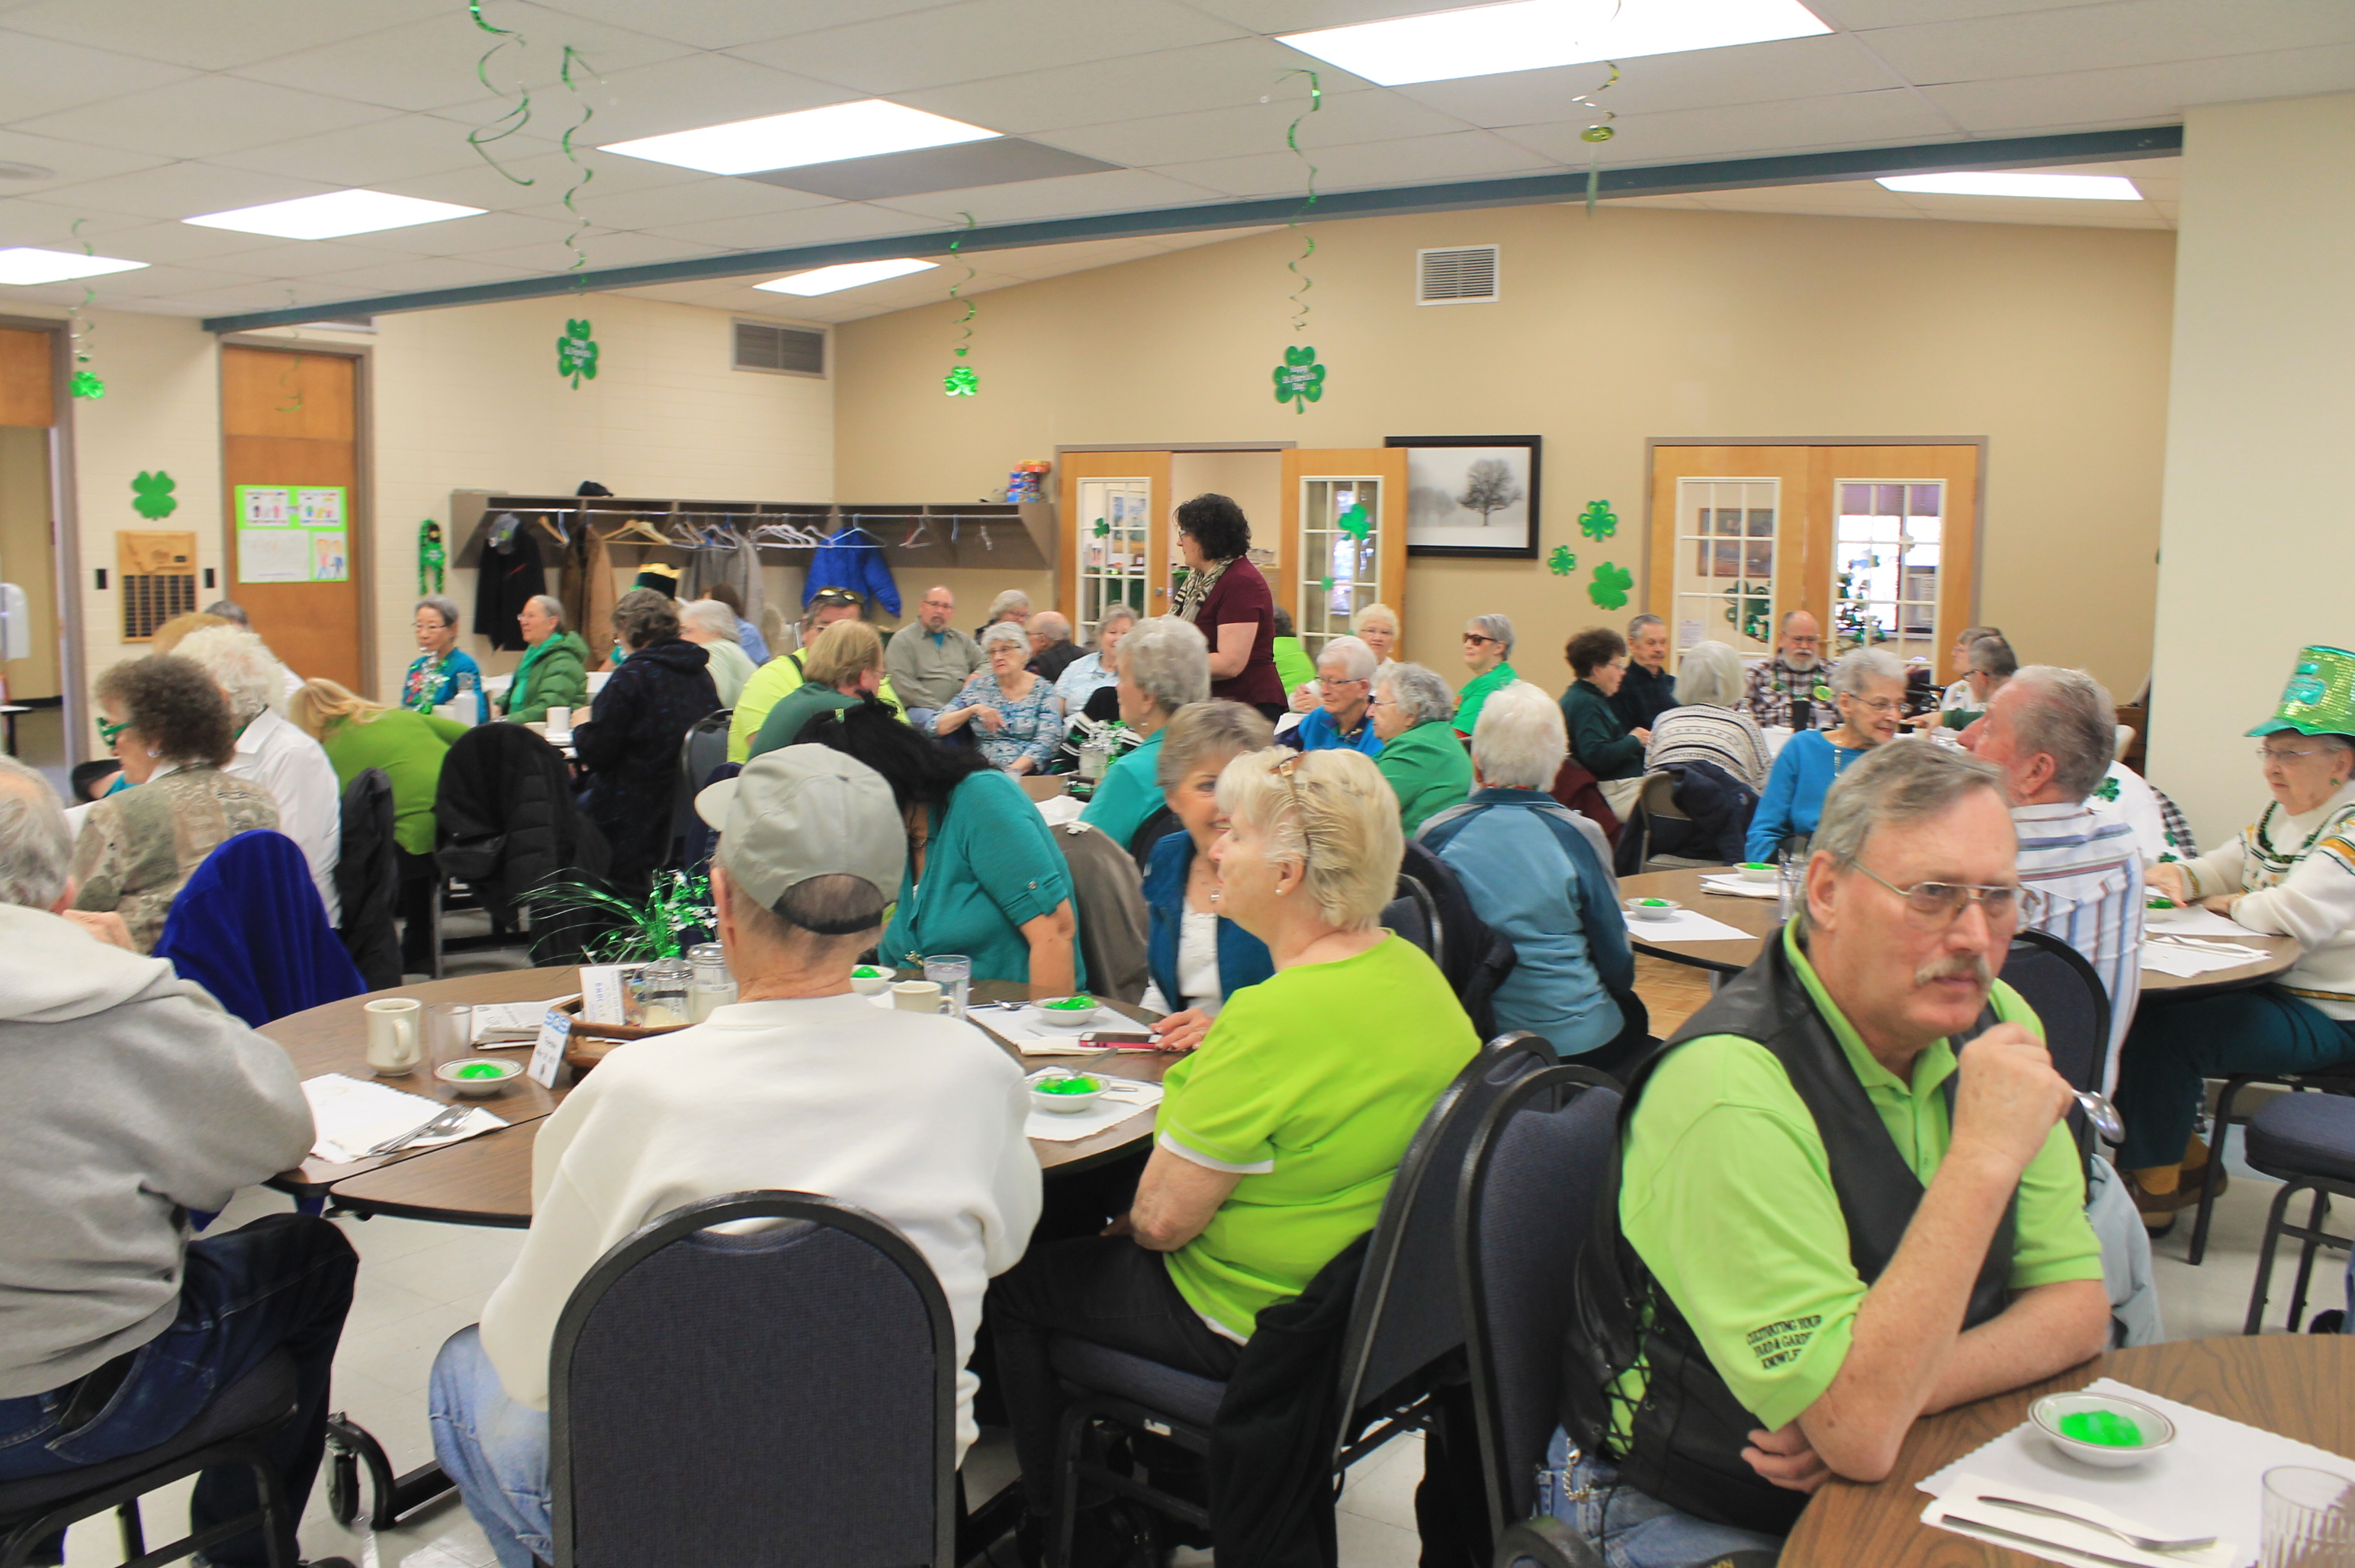 Pictured: A packed senior center on St. Patrick's Day.